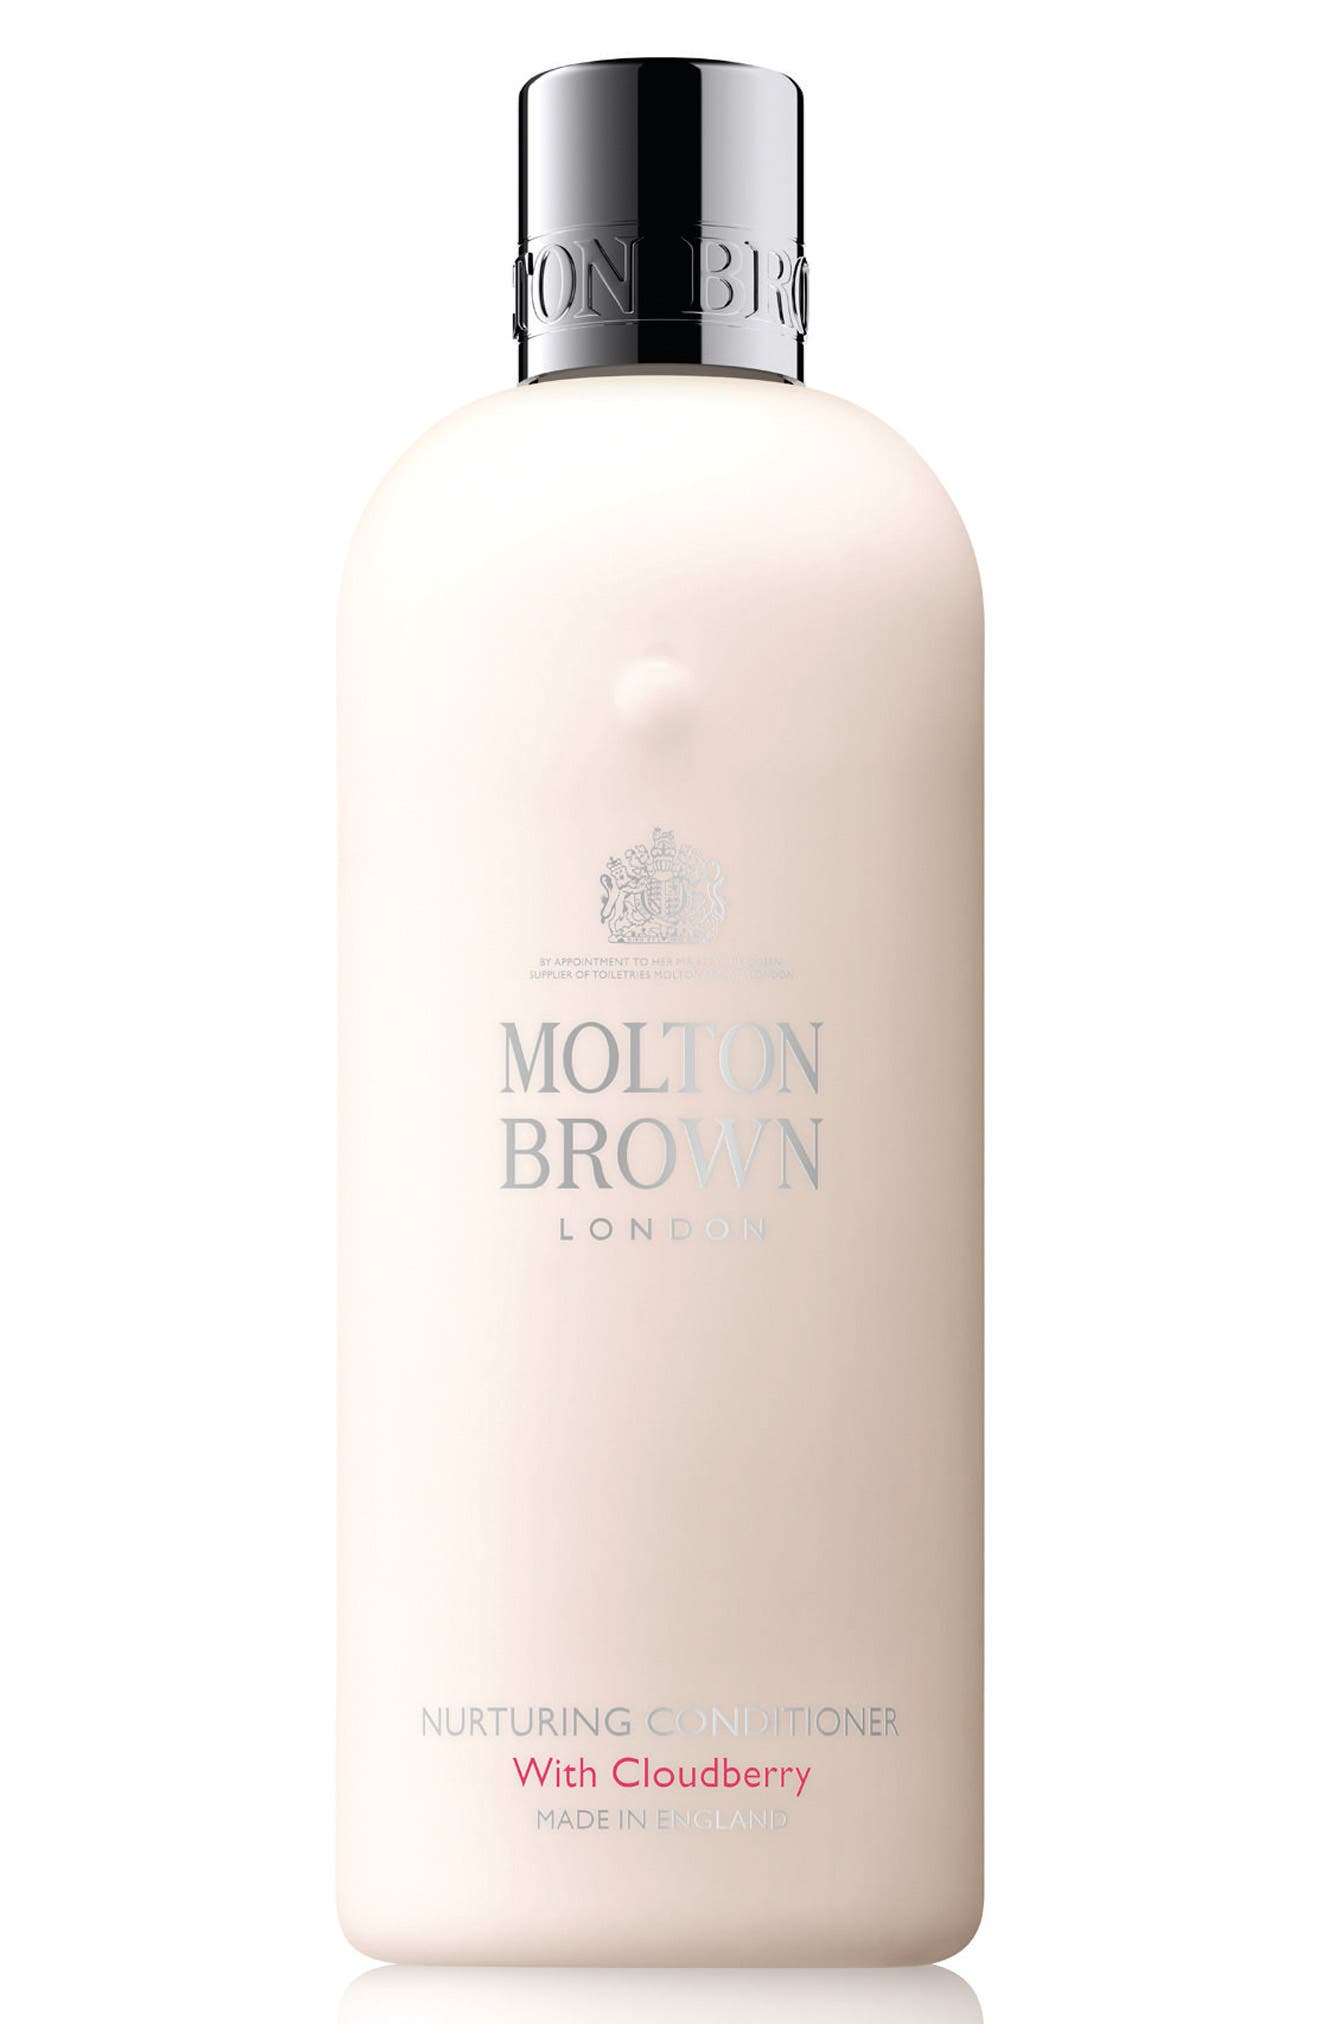 MOLTON BROWN London Nurturing Conditioner with Cloudberry